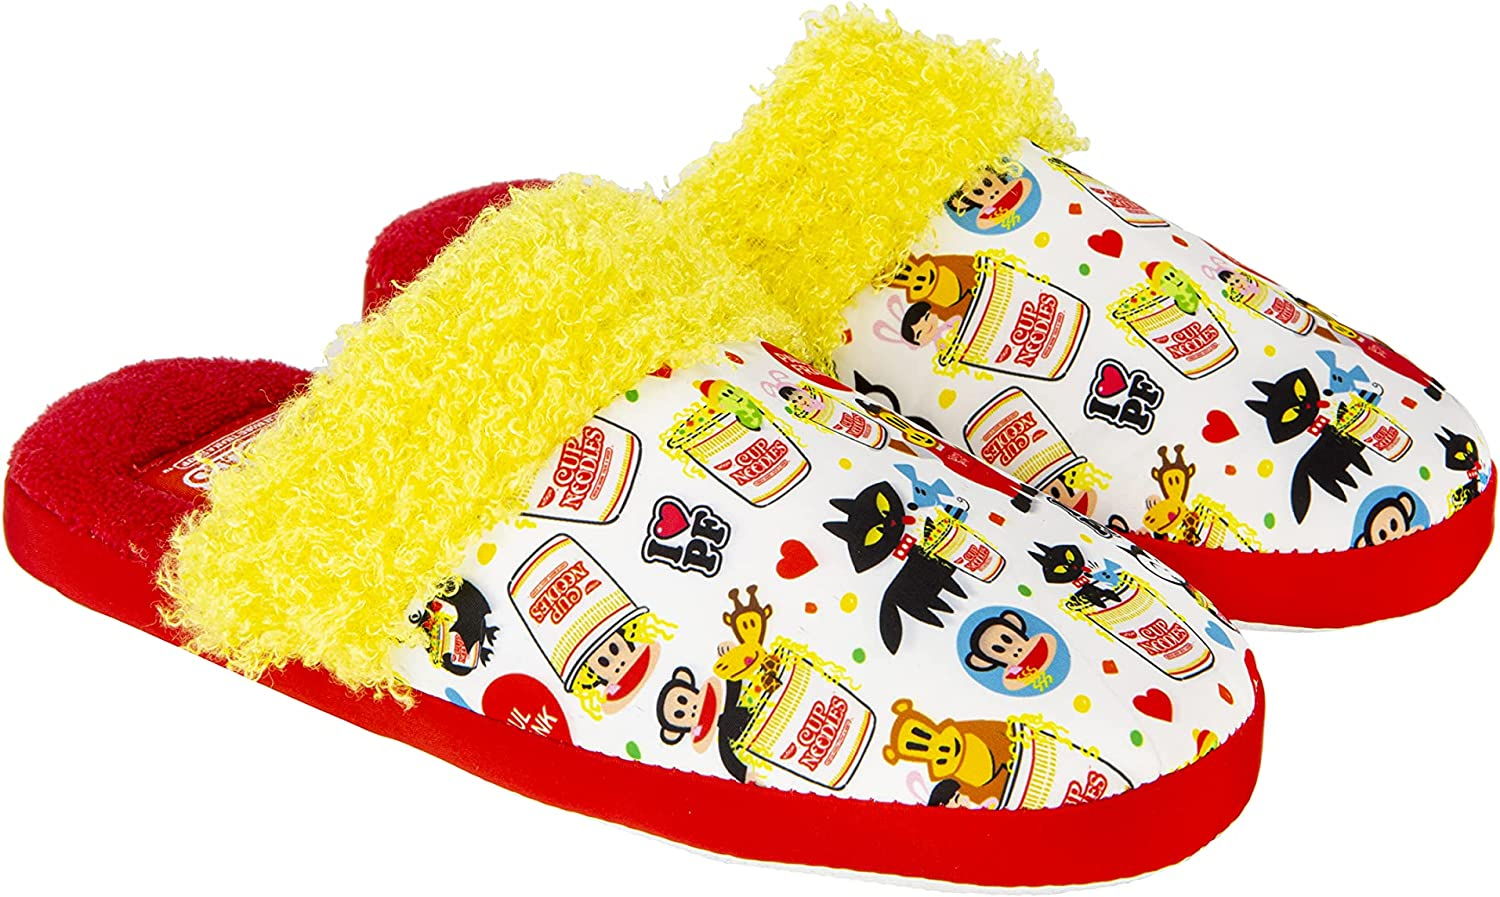 Paul Frank & Cup Noodles Soft Slippers